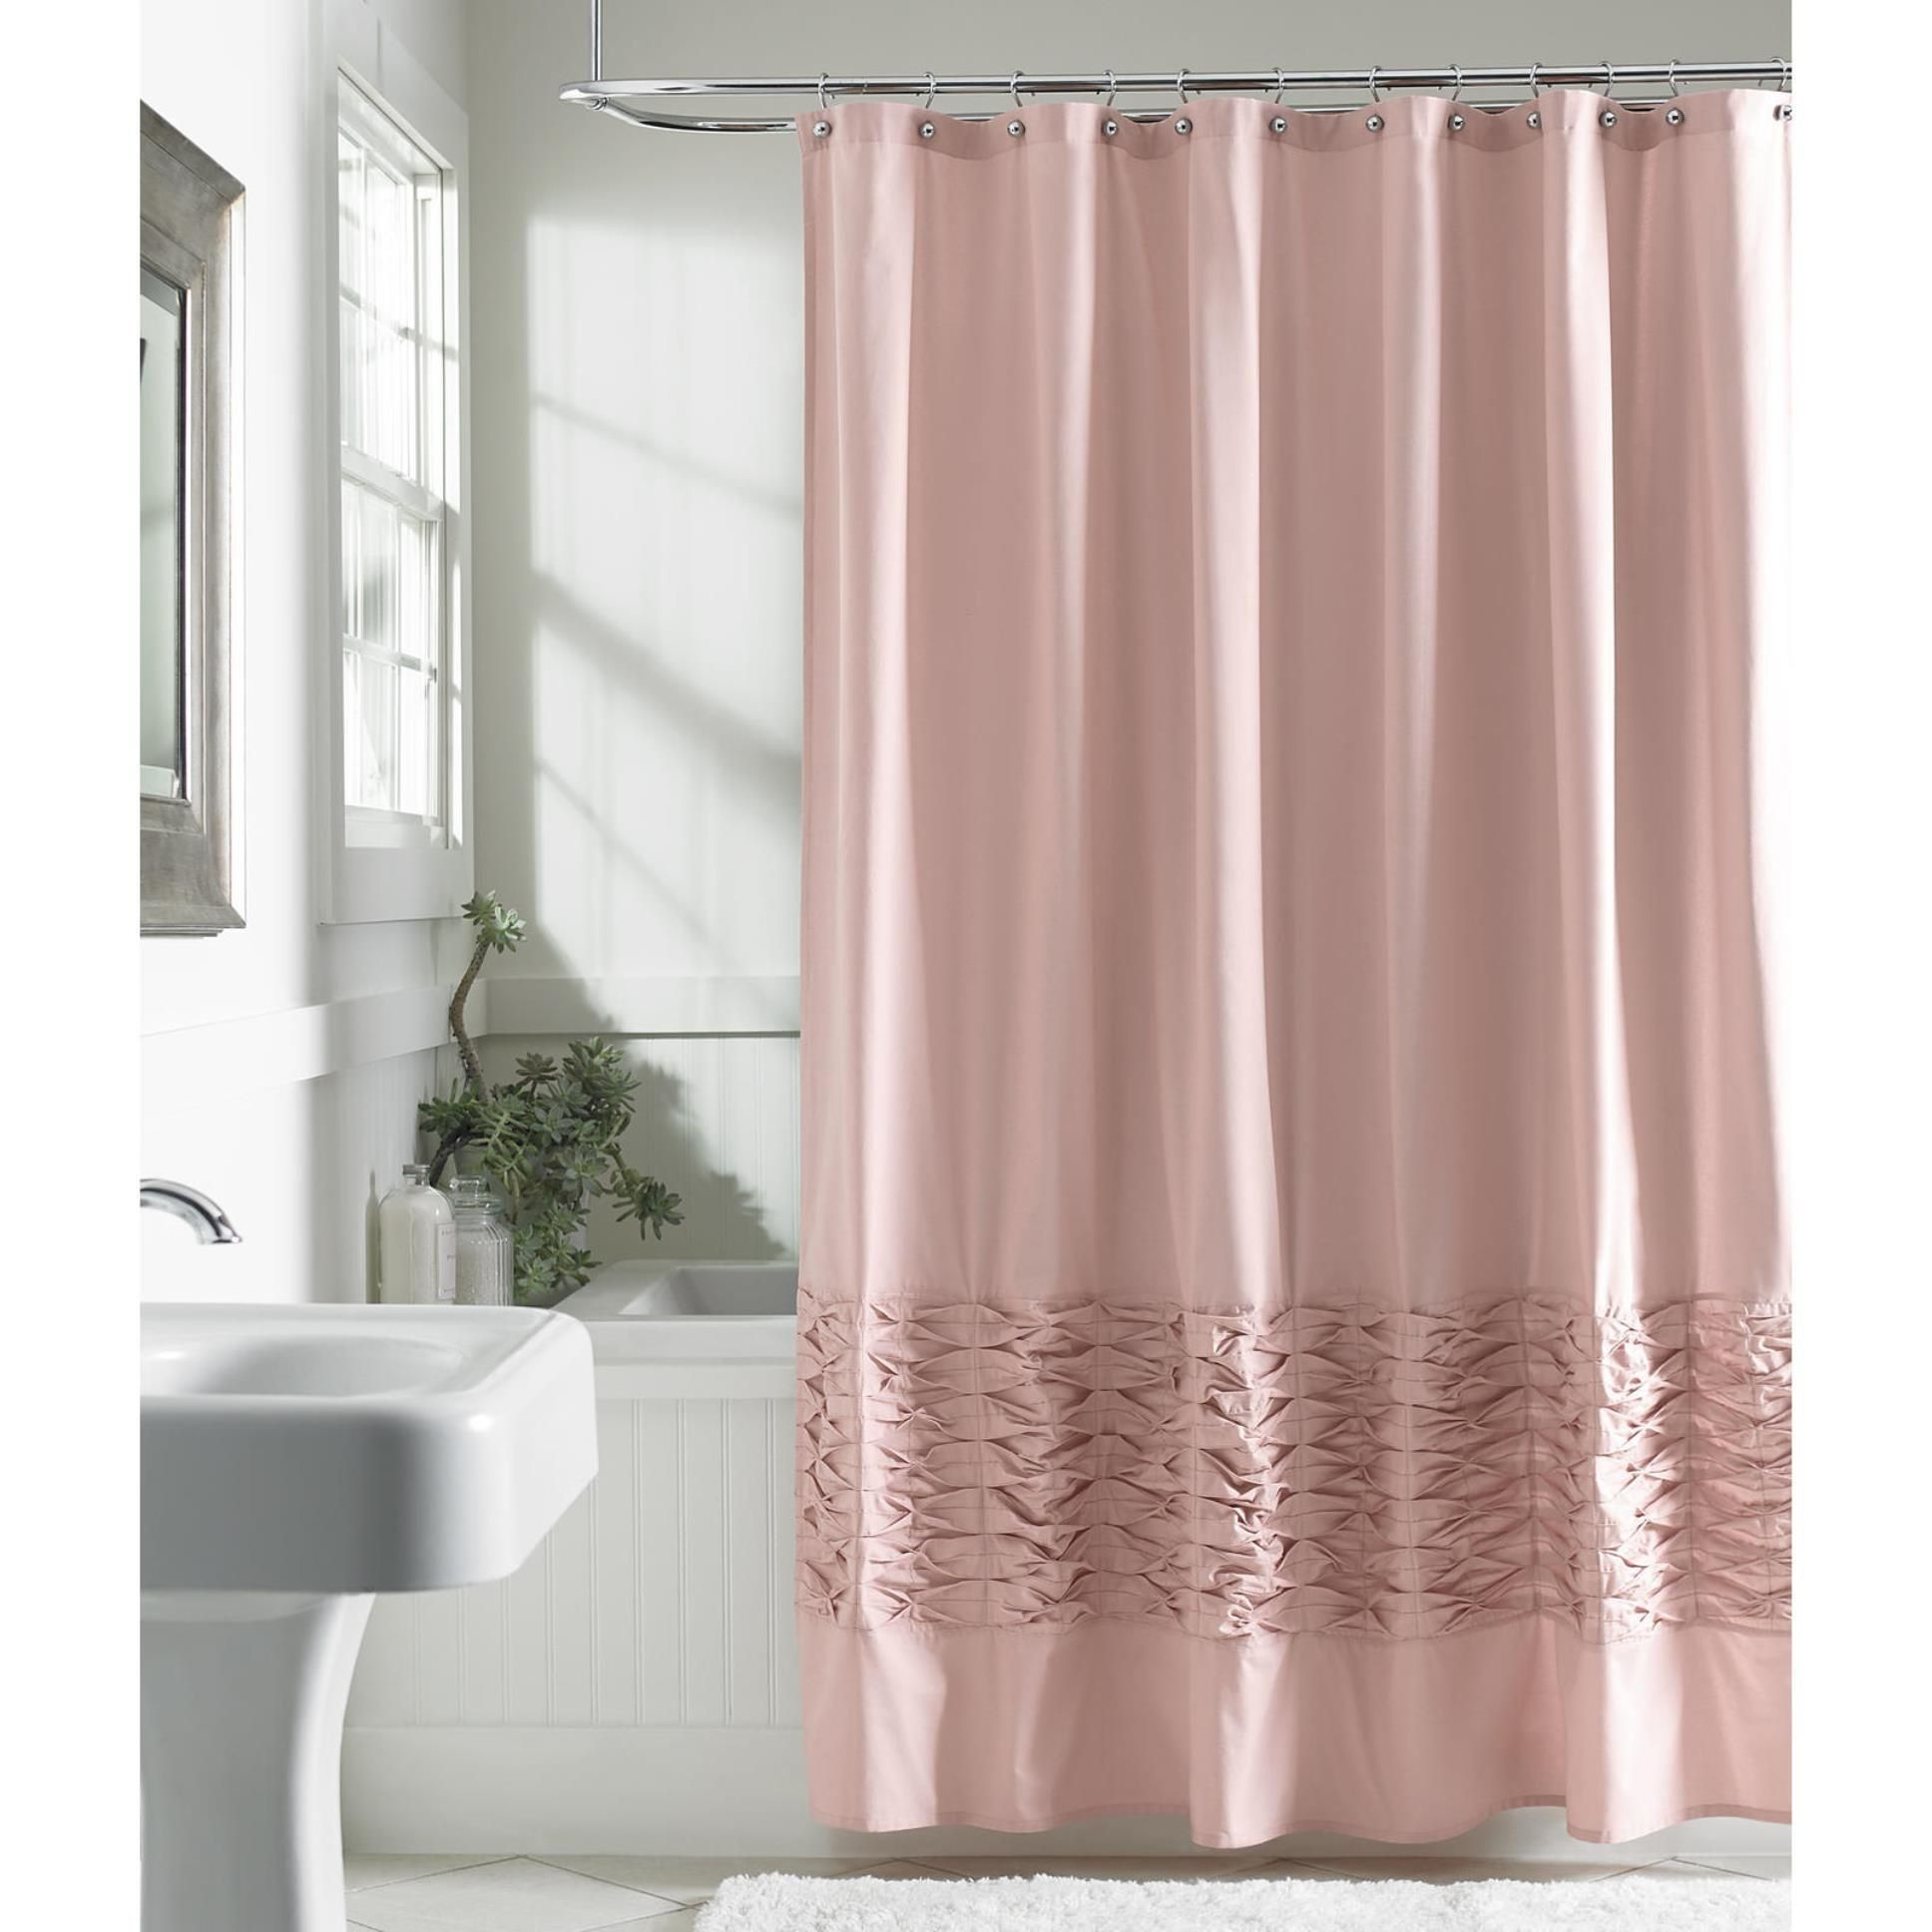 Awesome Pink Rose Shower Curtain